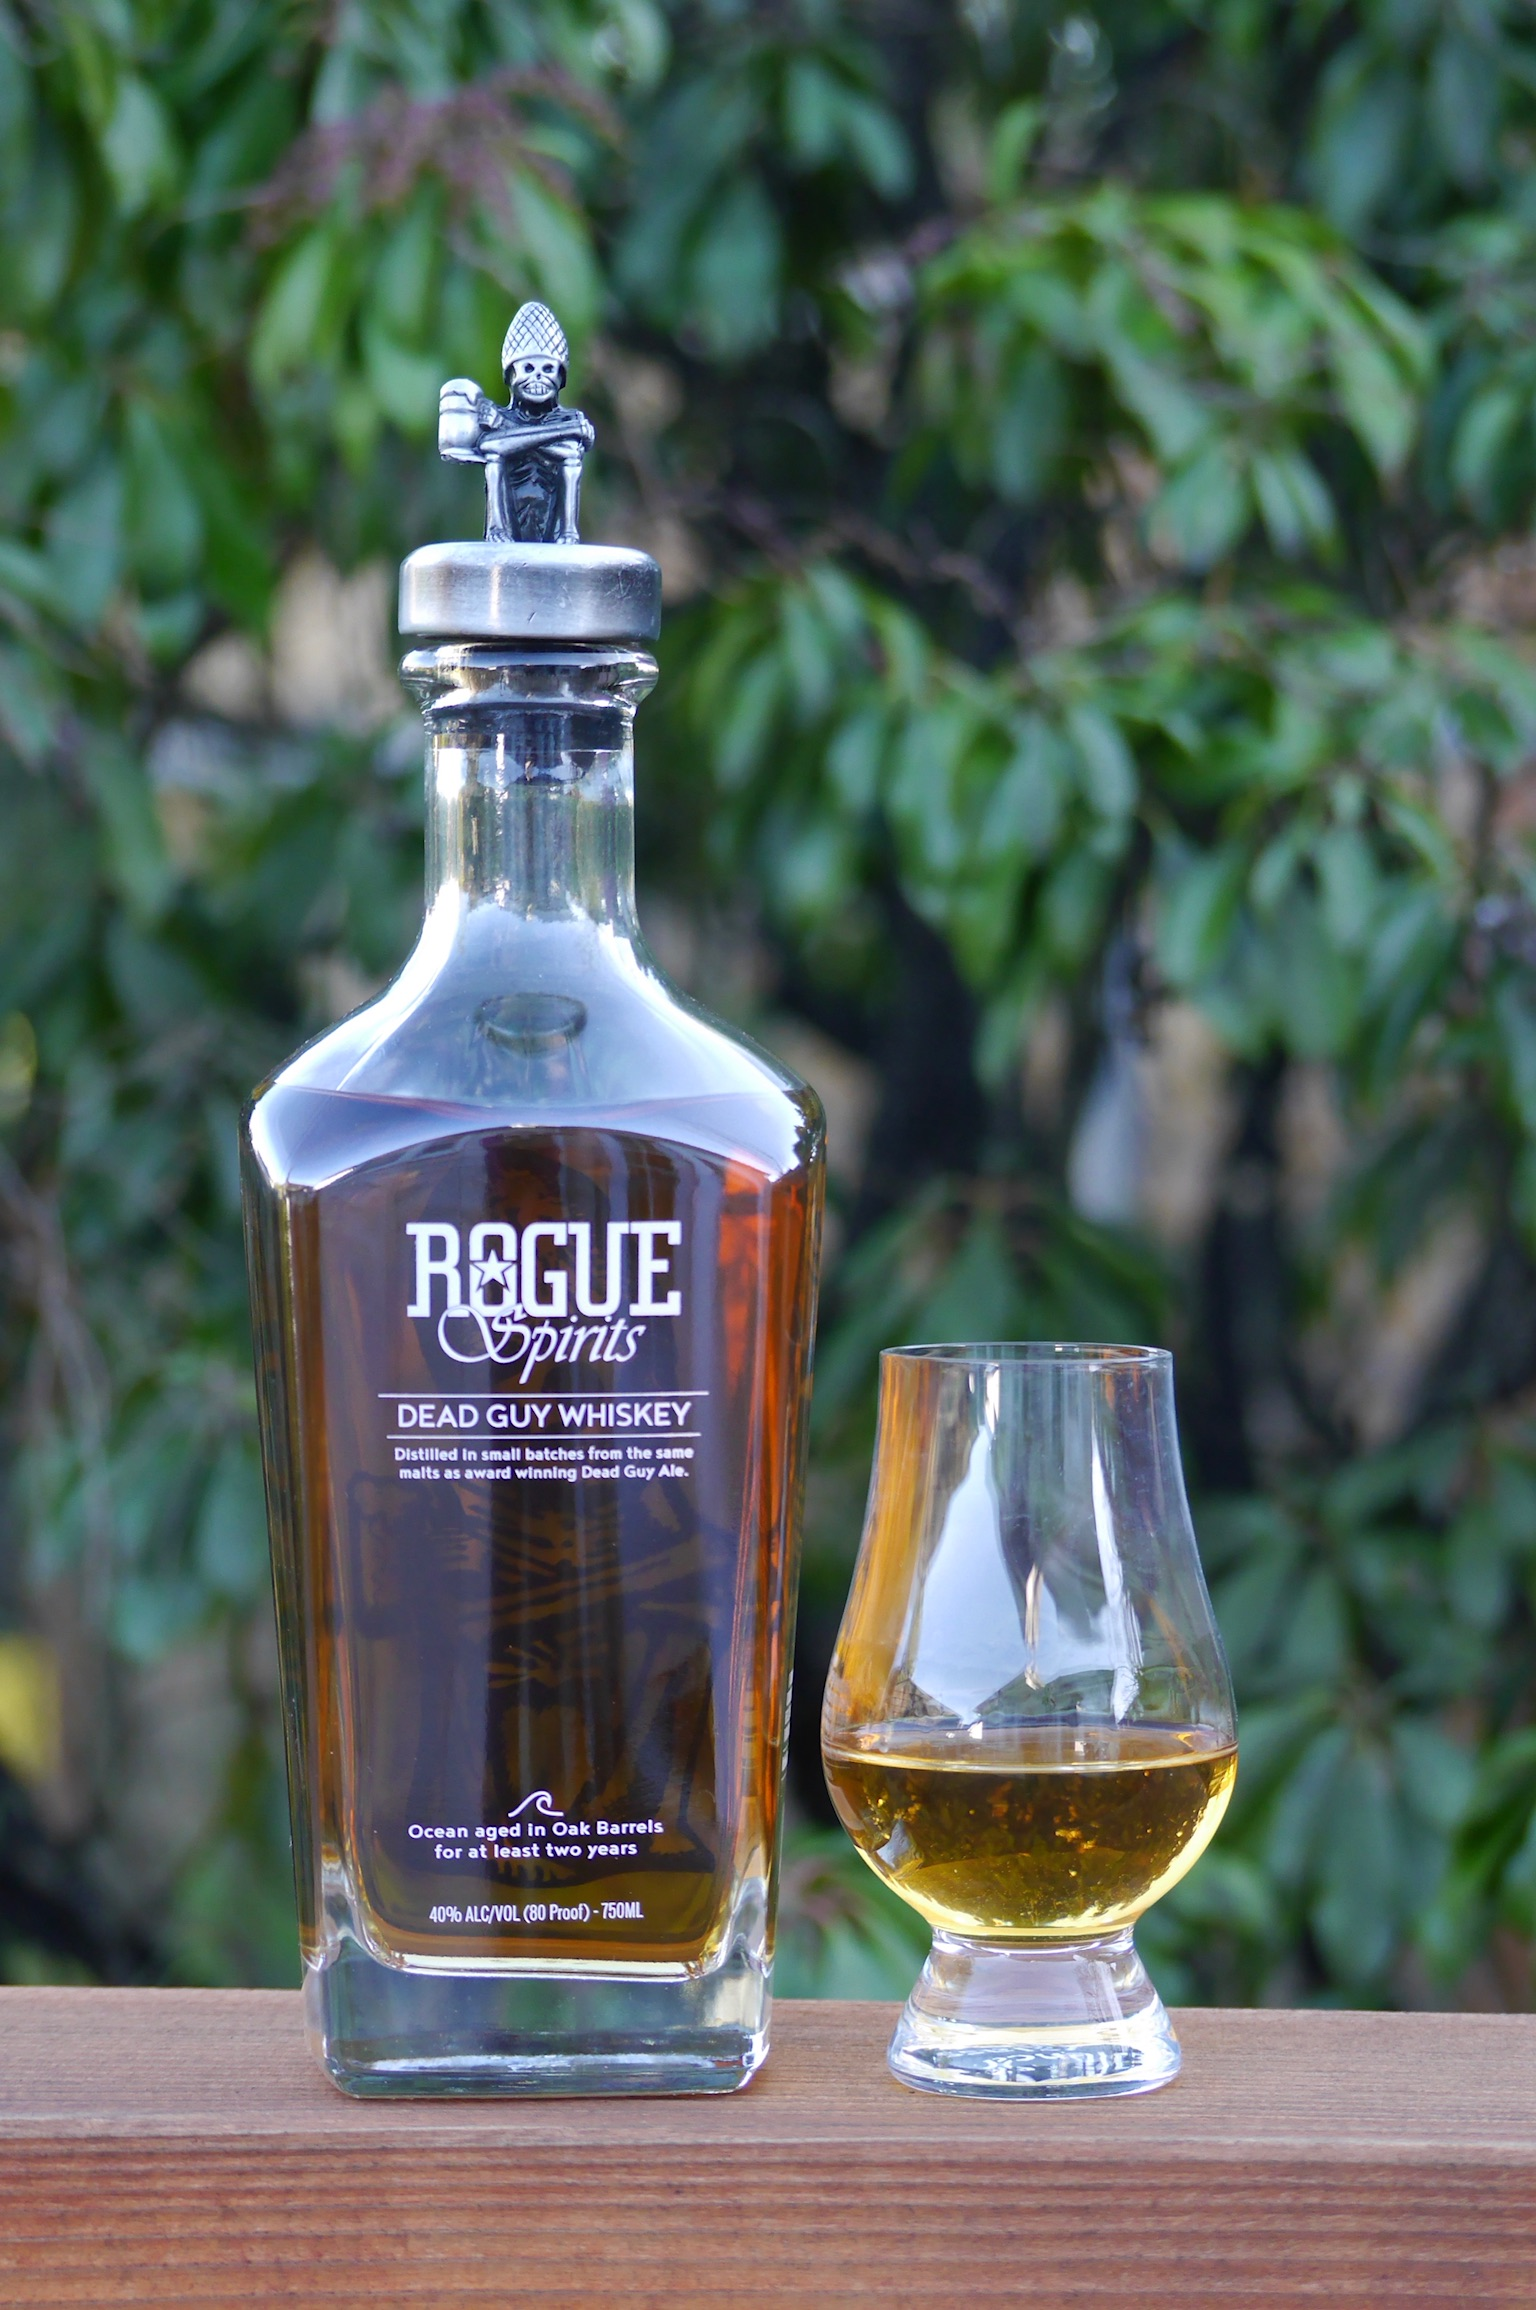 A dram of Rogue Spirits Dead Guy Whiskey. (photo by Cat Stelzer)